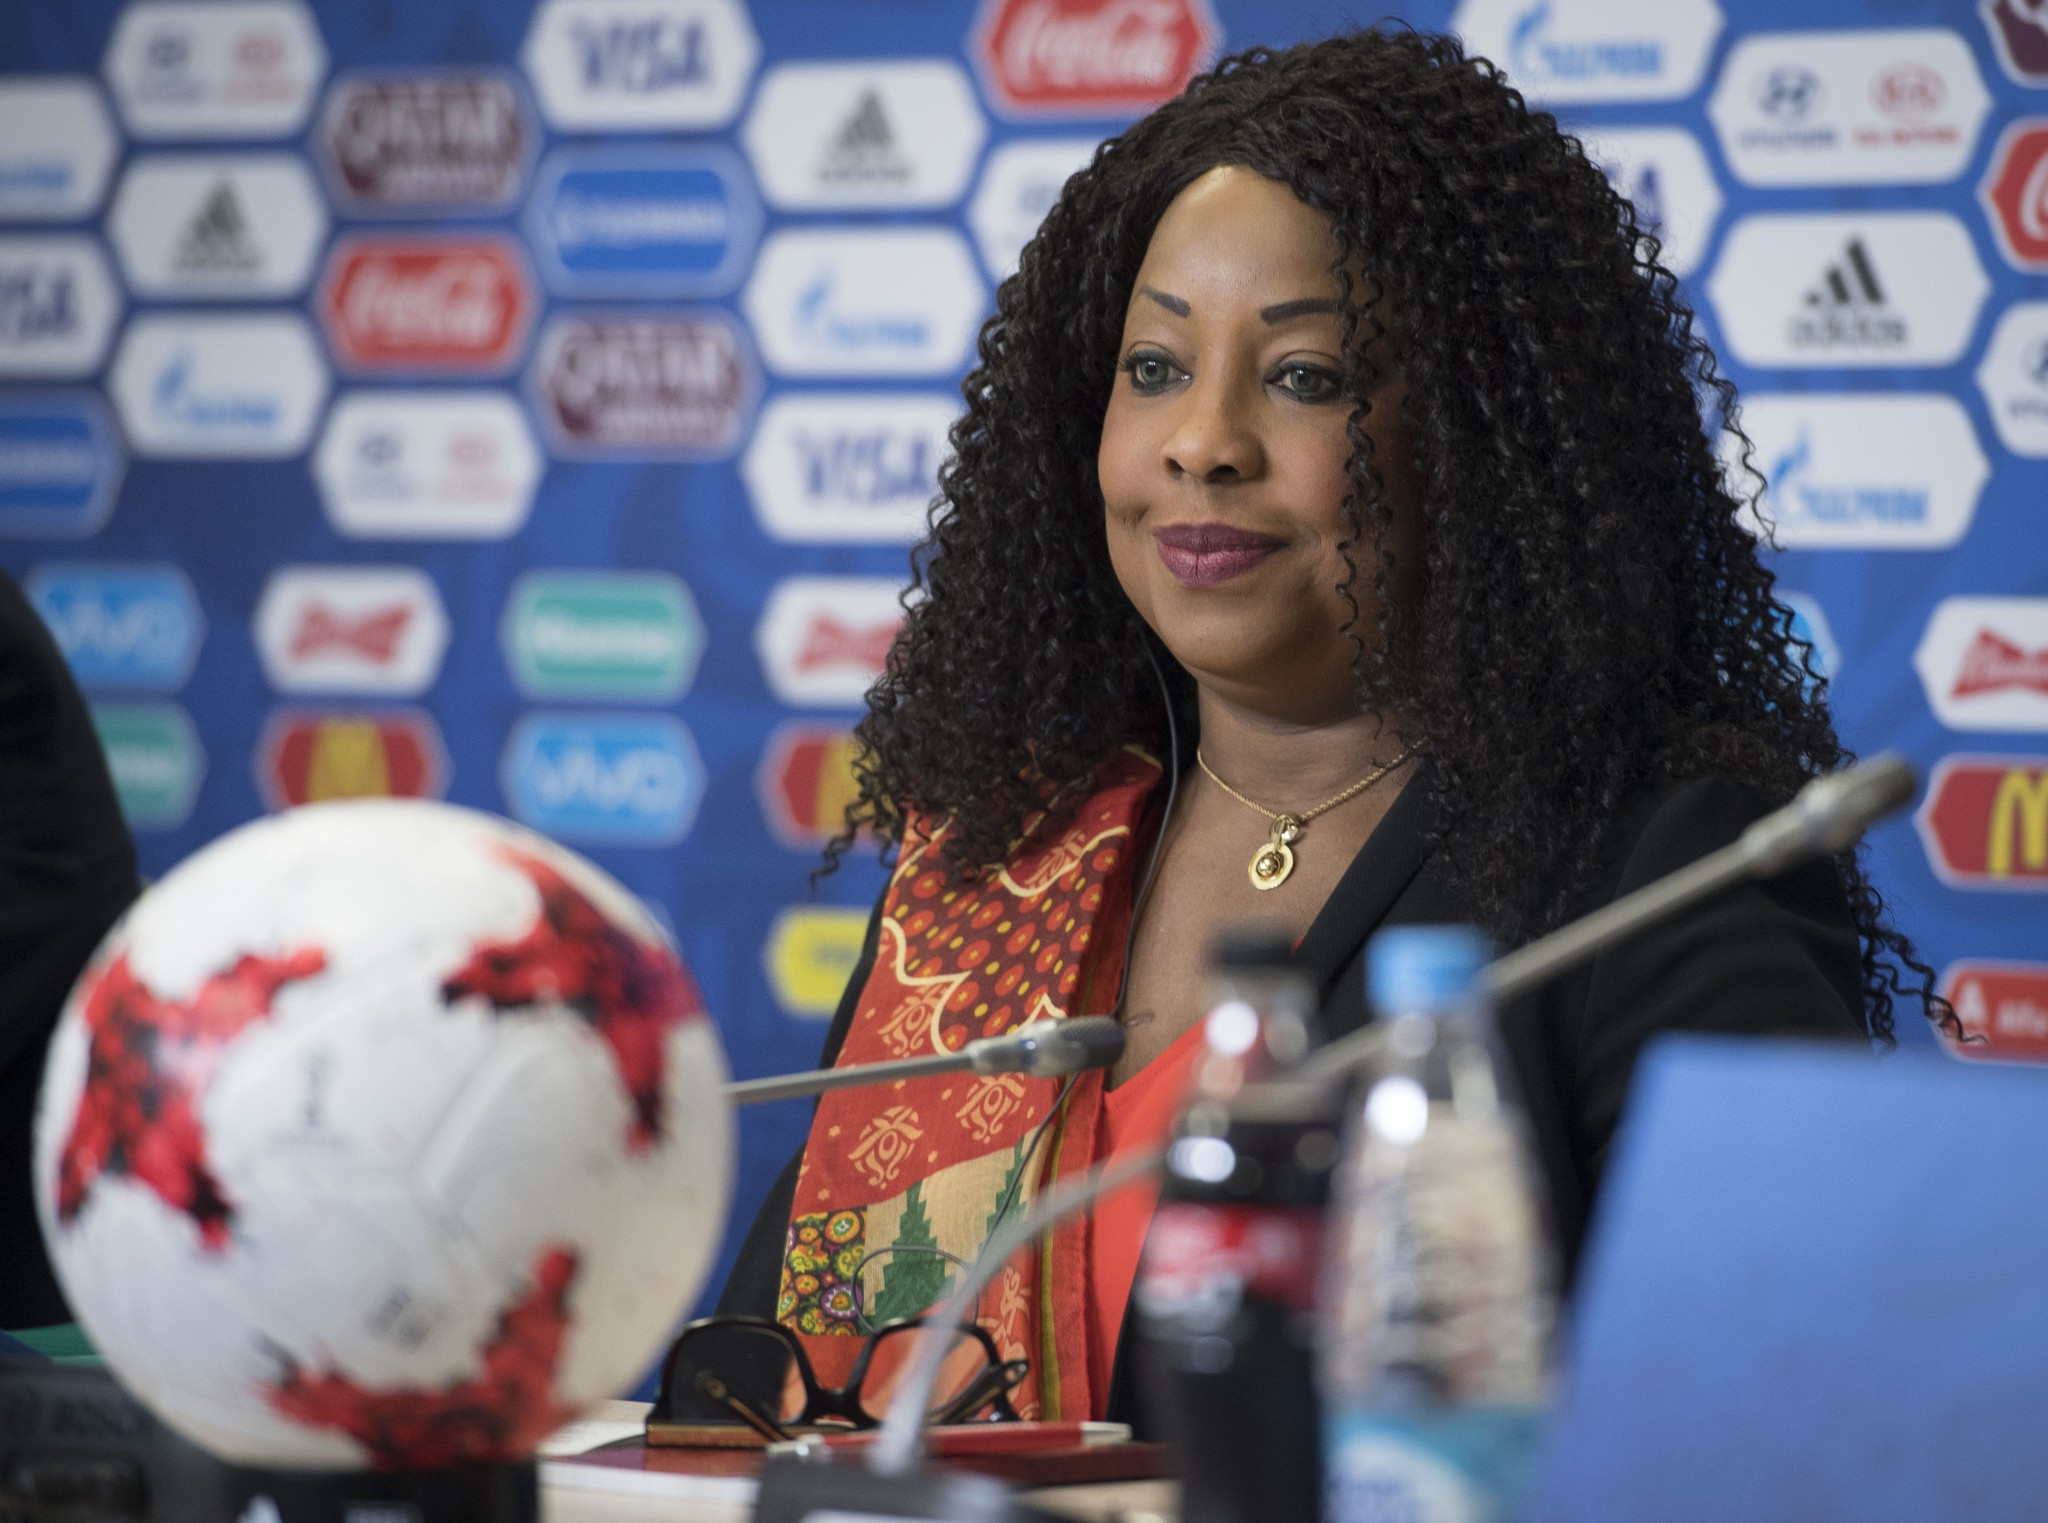 FFA secretary general Fatma Samoura warned banning Vitaly Mutko from standing would be a disaster for the 2018 World Cup and Gianni Infantino's Presidency ©Getty Images